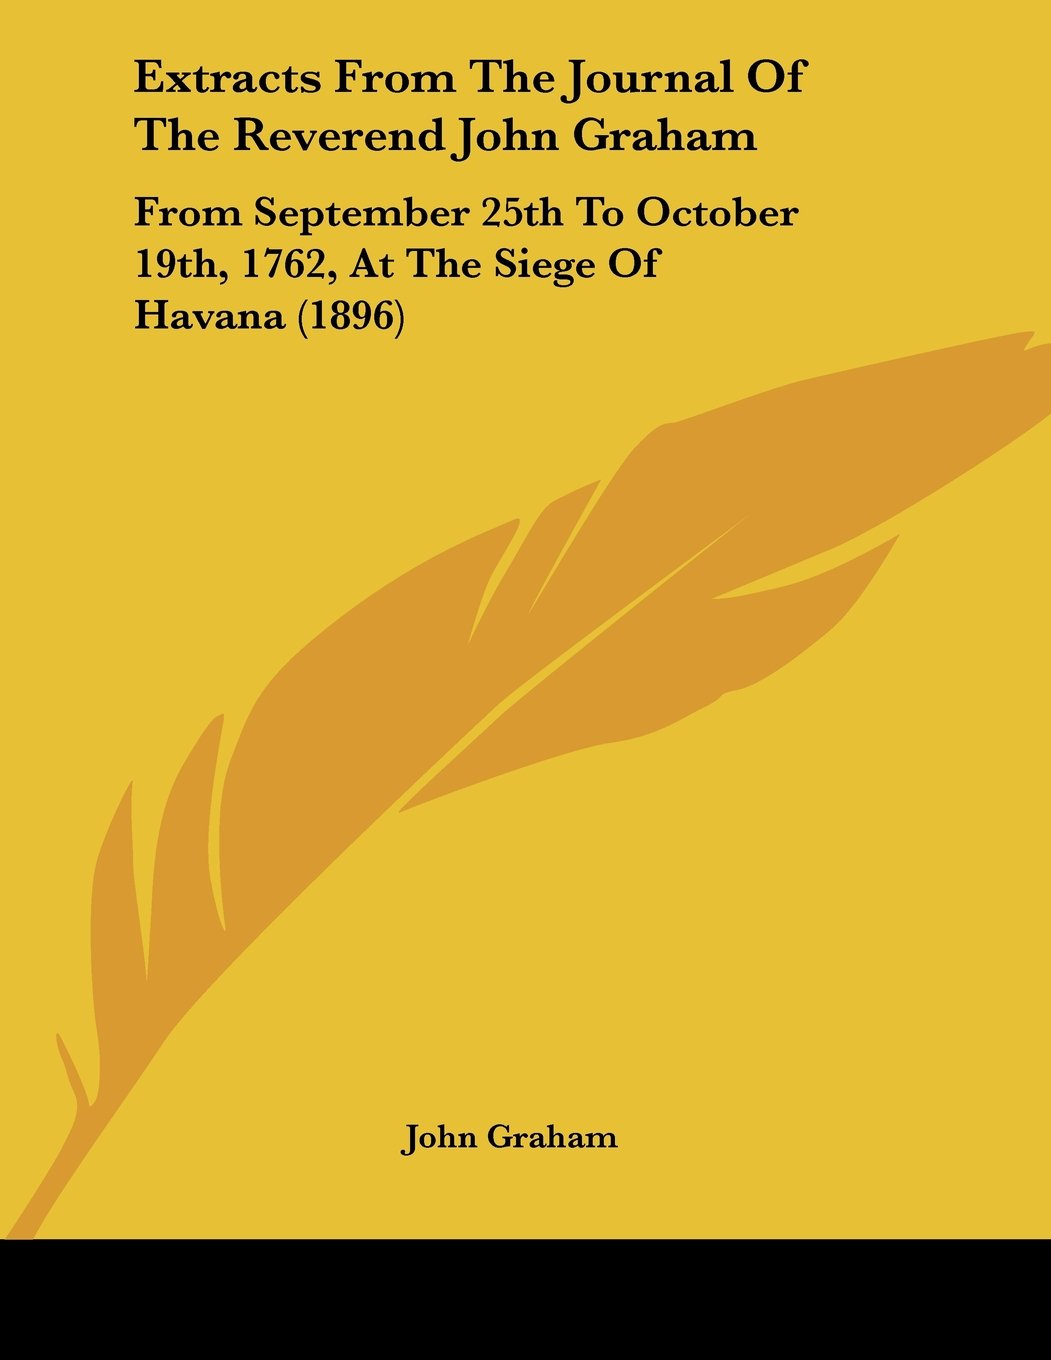 Download Extracts From The Journal Of The Reverend John Graham: From September 25th To October 19th, 1762, At The Siege Of Havana (1896) pdf epub